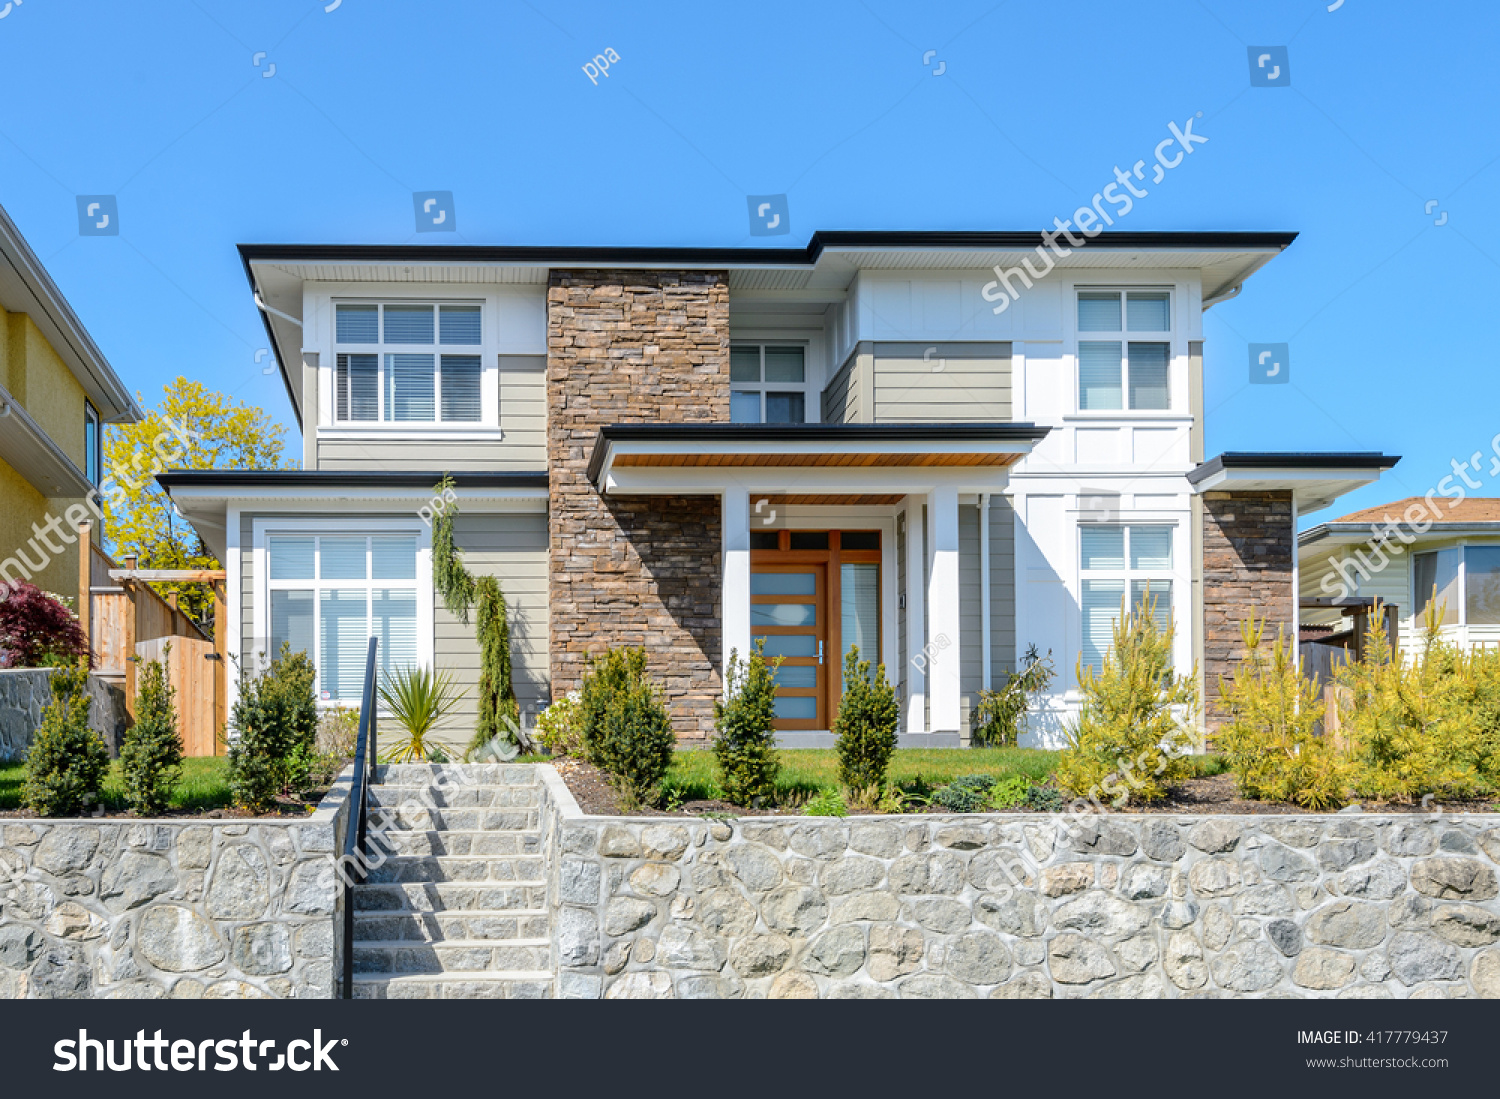 Luxury modern house beautilful landscaping home stock for Luxury modern home exterior